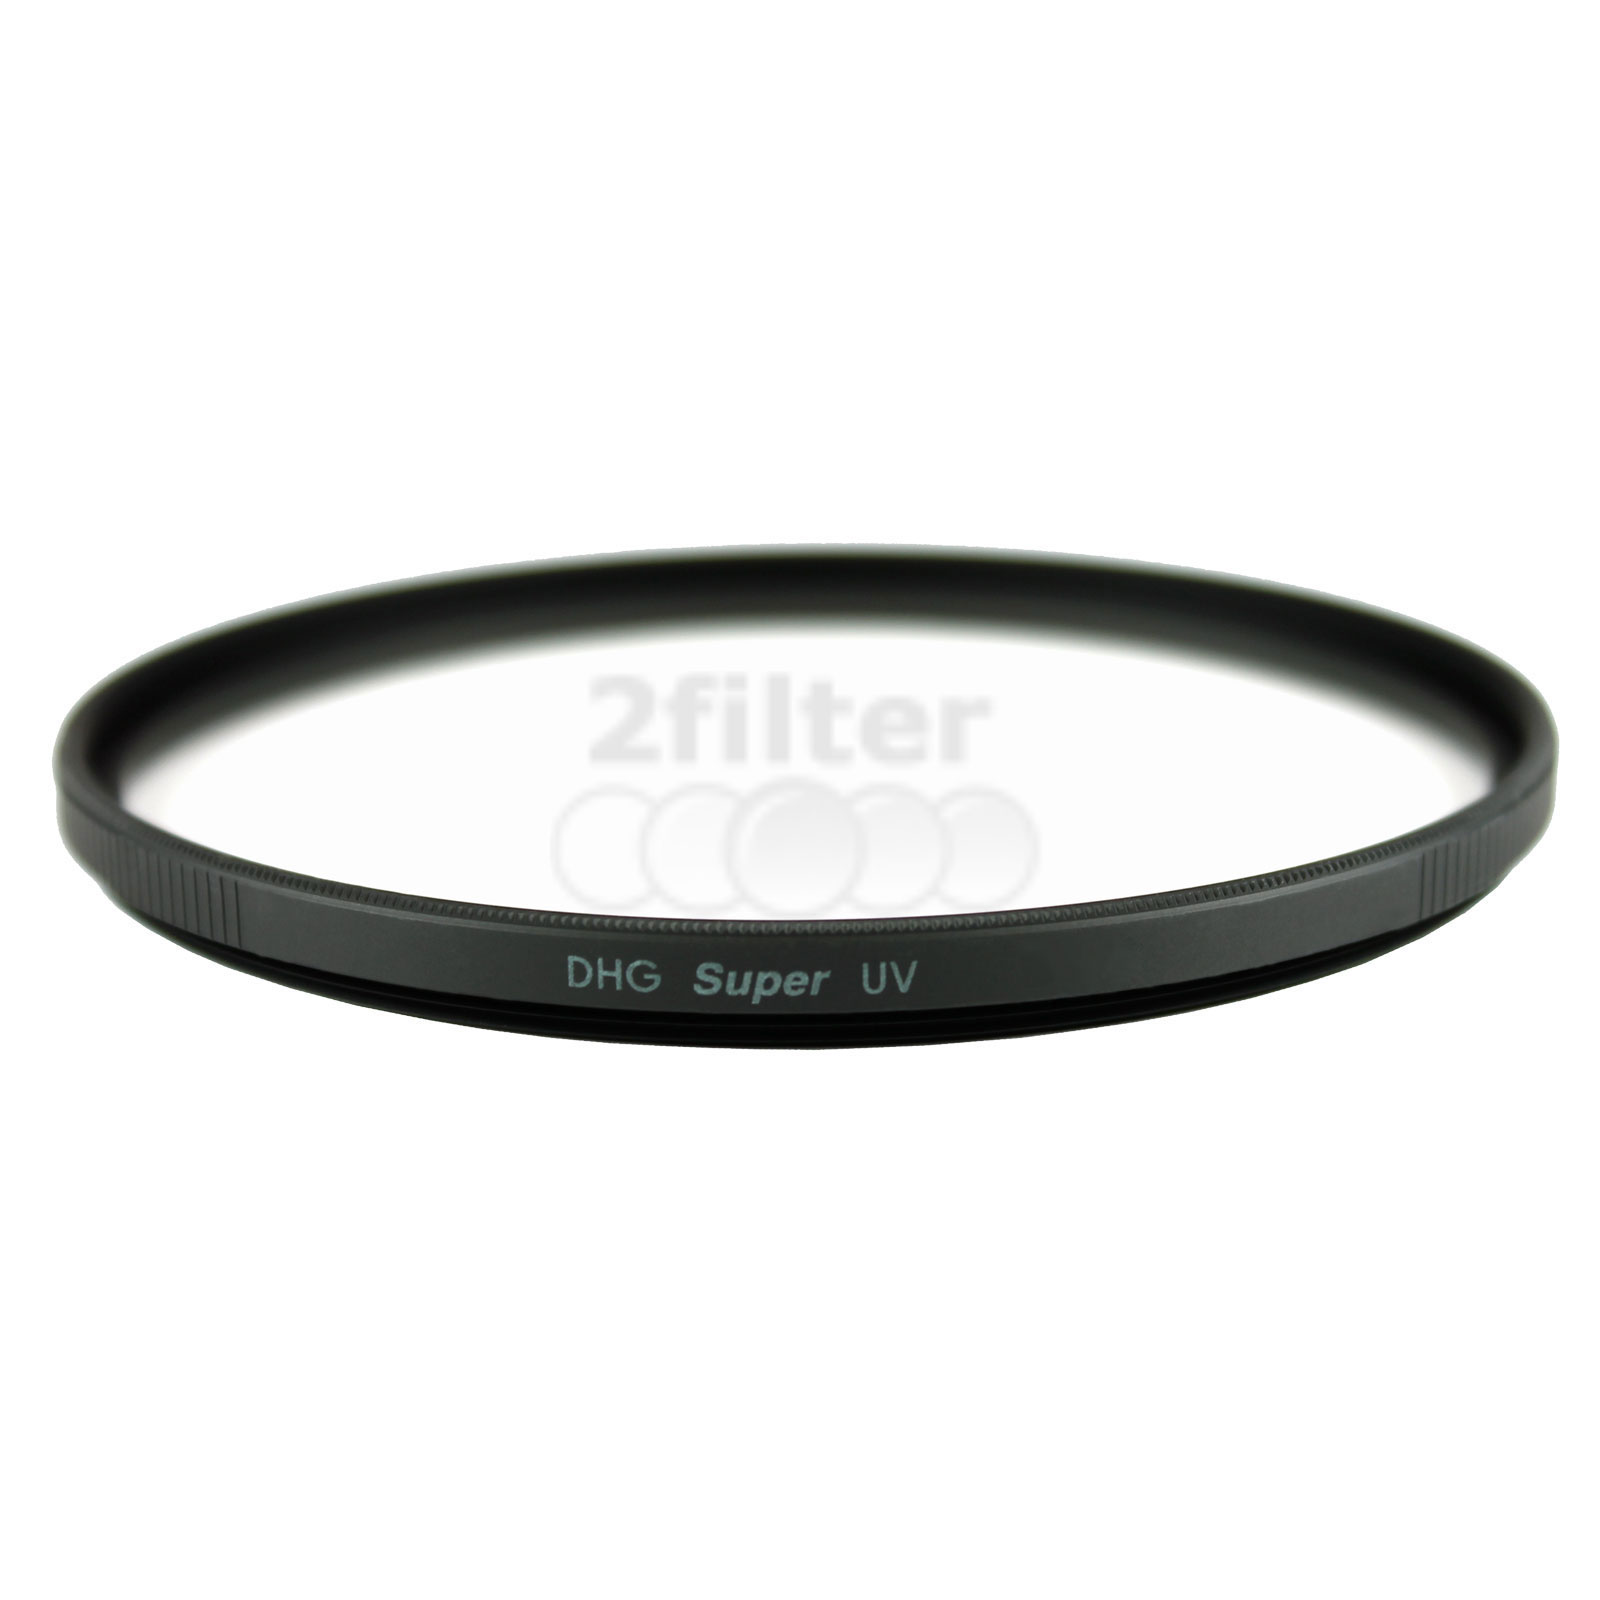 Marumi DHG Super UV L390 72mm Lens Protective Multicoated Filter